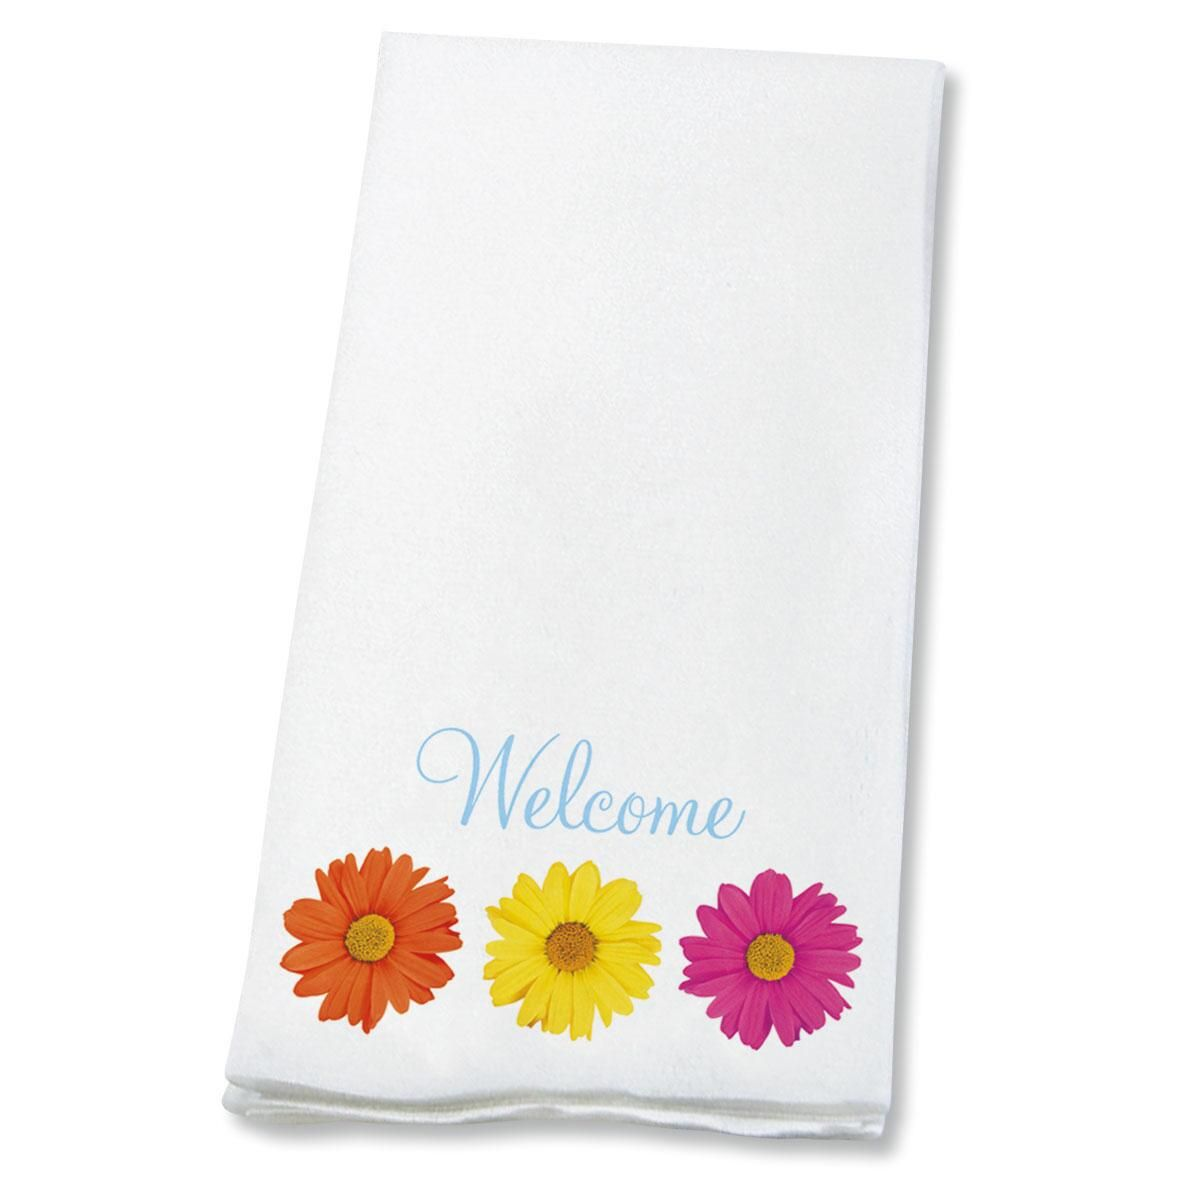 Welcome Gerbera Daisies   Disposable Hand Towels